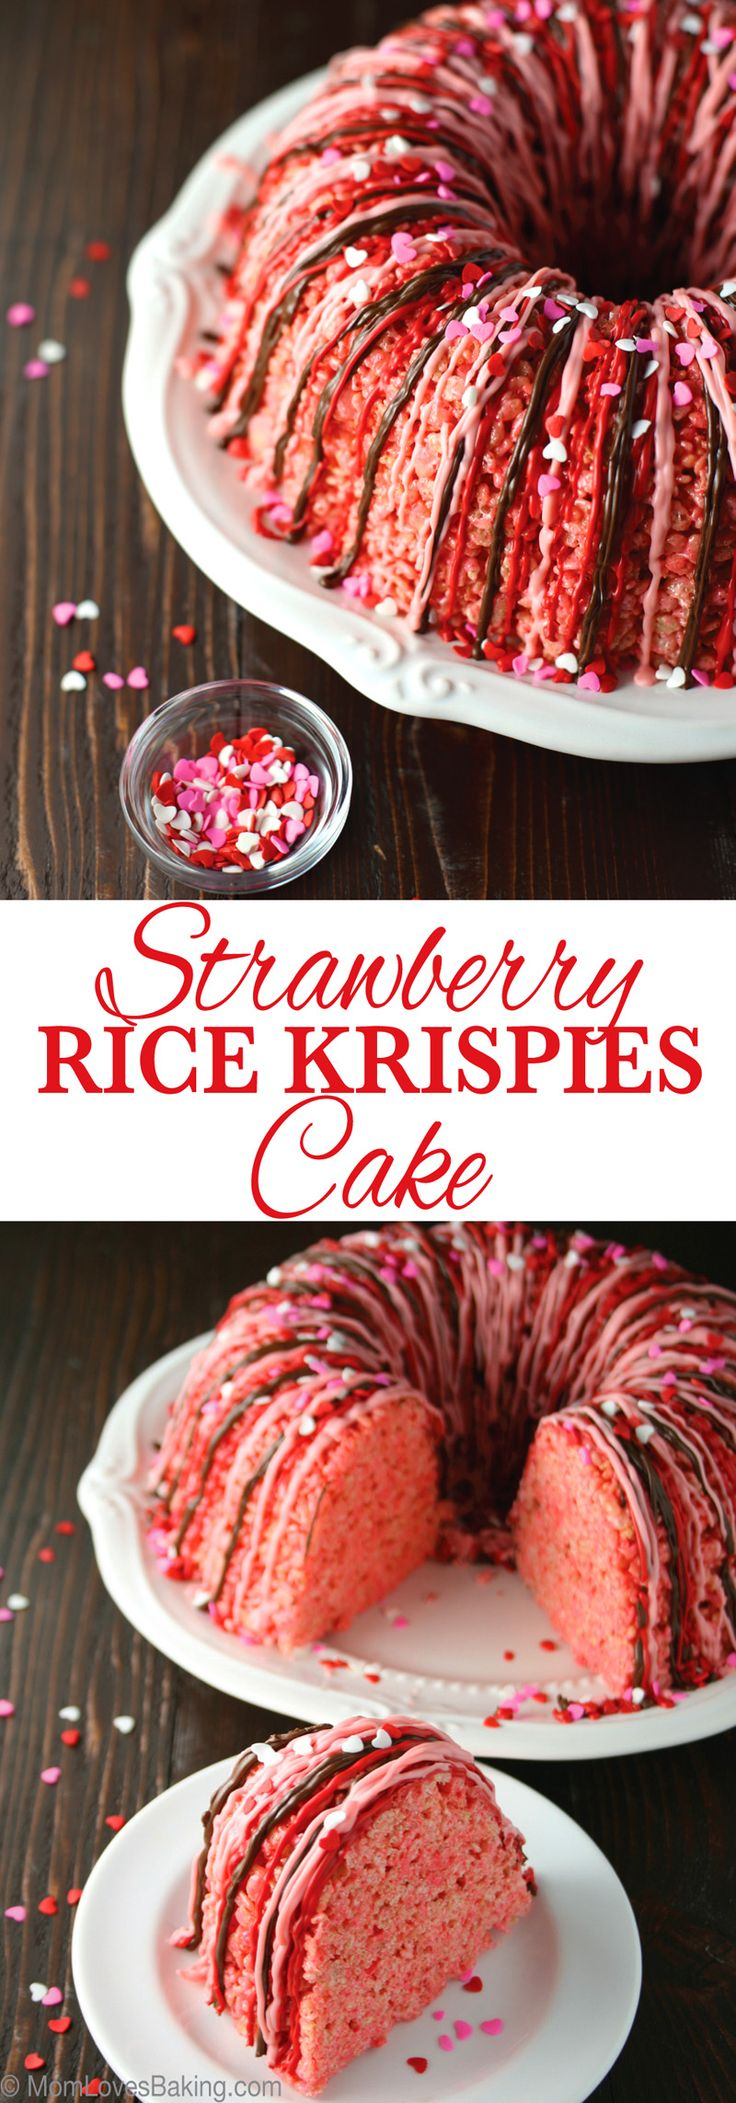 Strawberry flavored rice krispy treats are pressed into a Bundt pan to create a cute cake drizzled with chocolate.